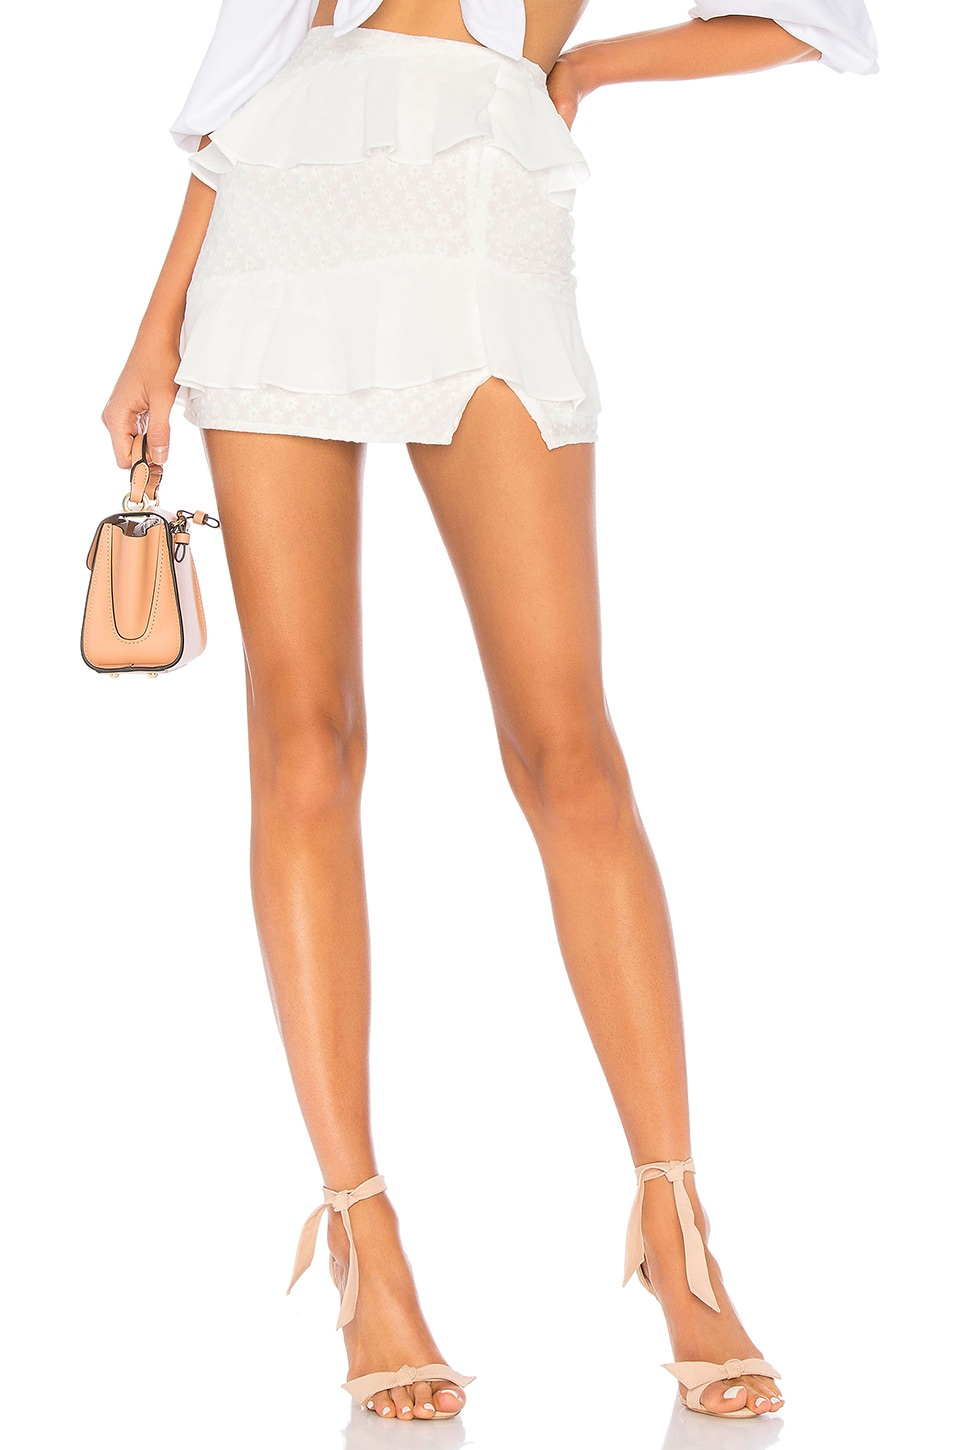 Privacy Please Klinedale Mini Skirt in White